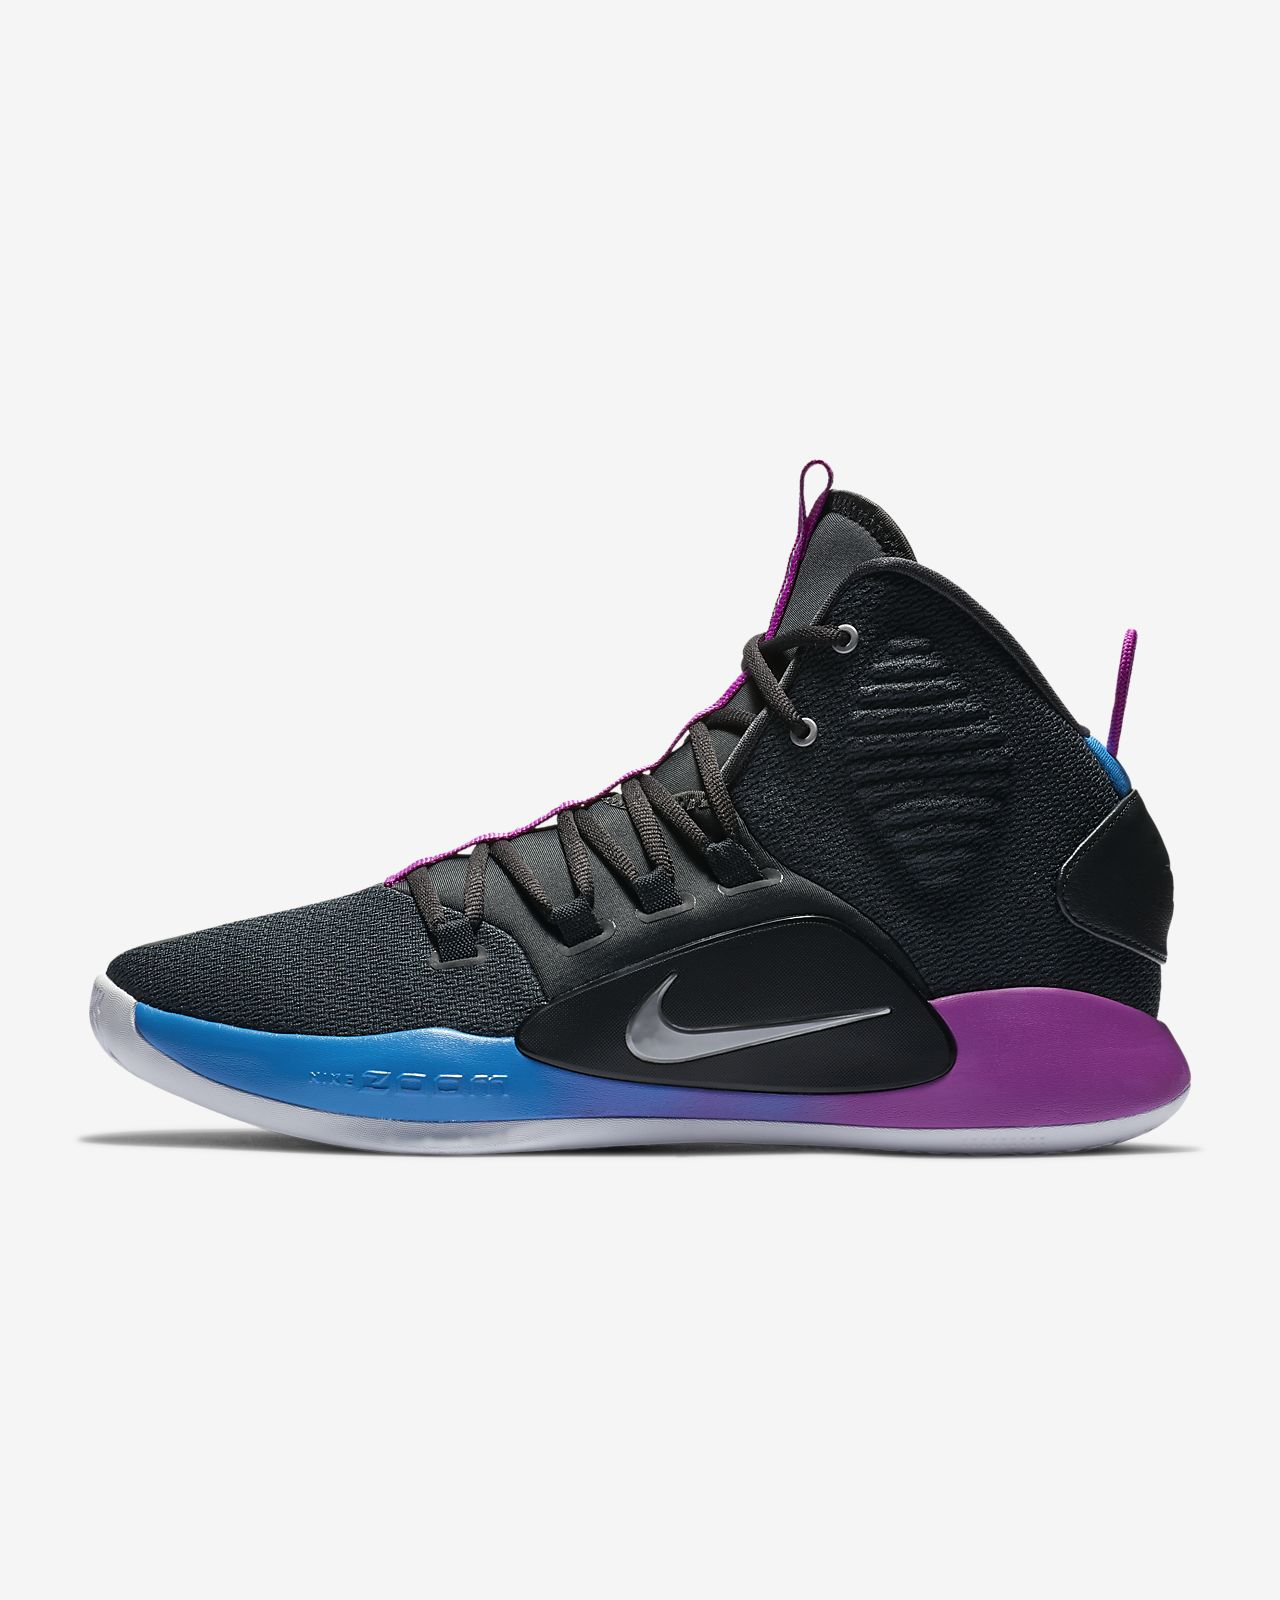 a2c3add7279e Low Resolution Nike Hyperdunk X Basketball Shoe Nike Hyperdunk X Basketball  Shoe